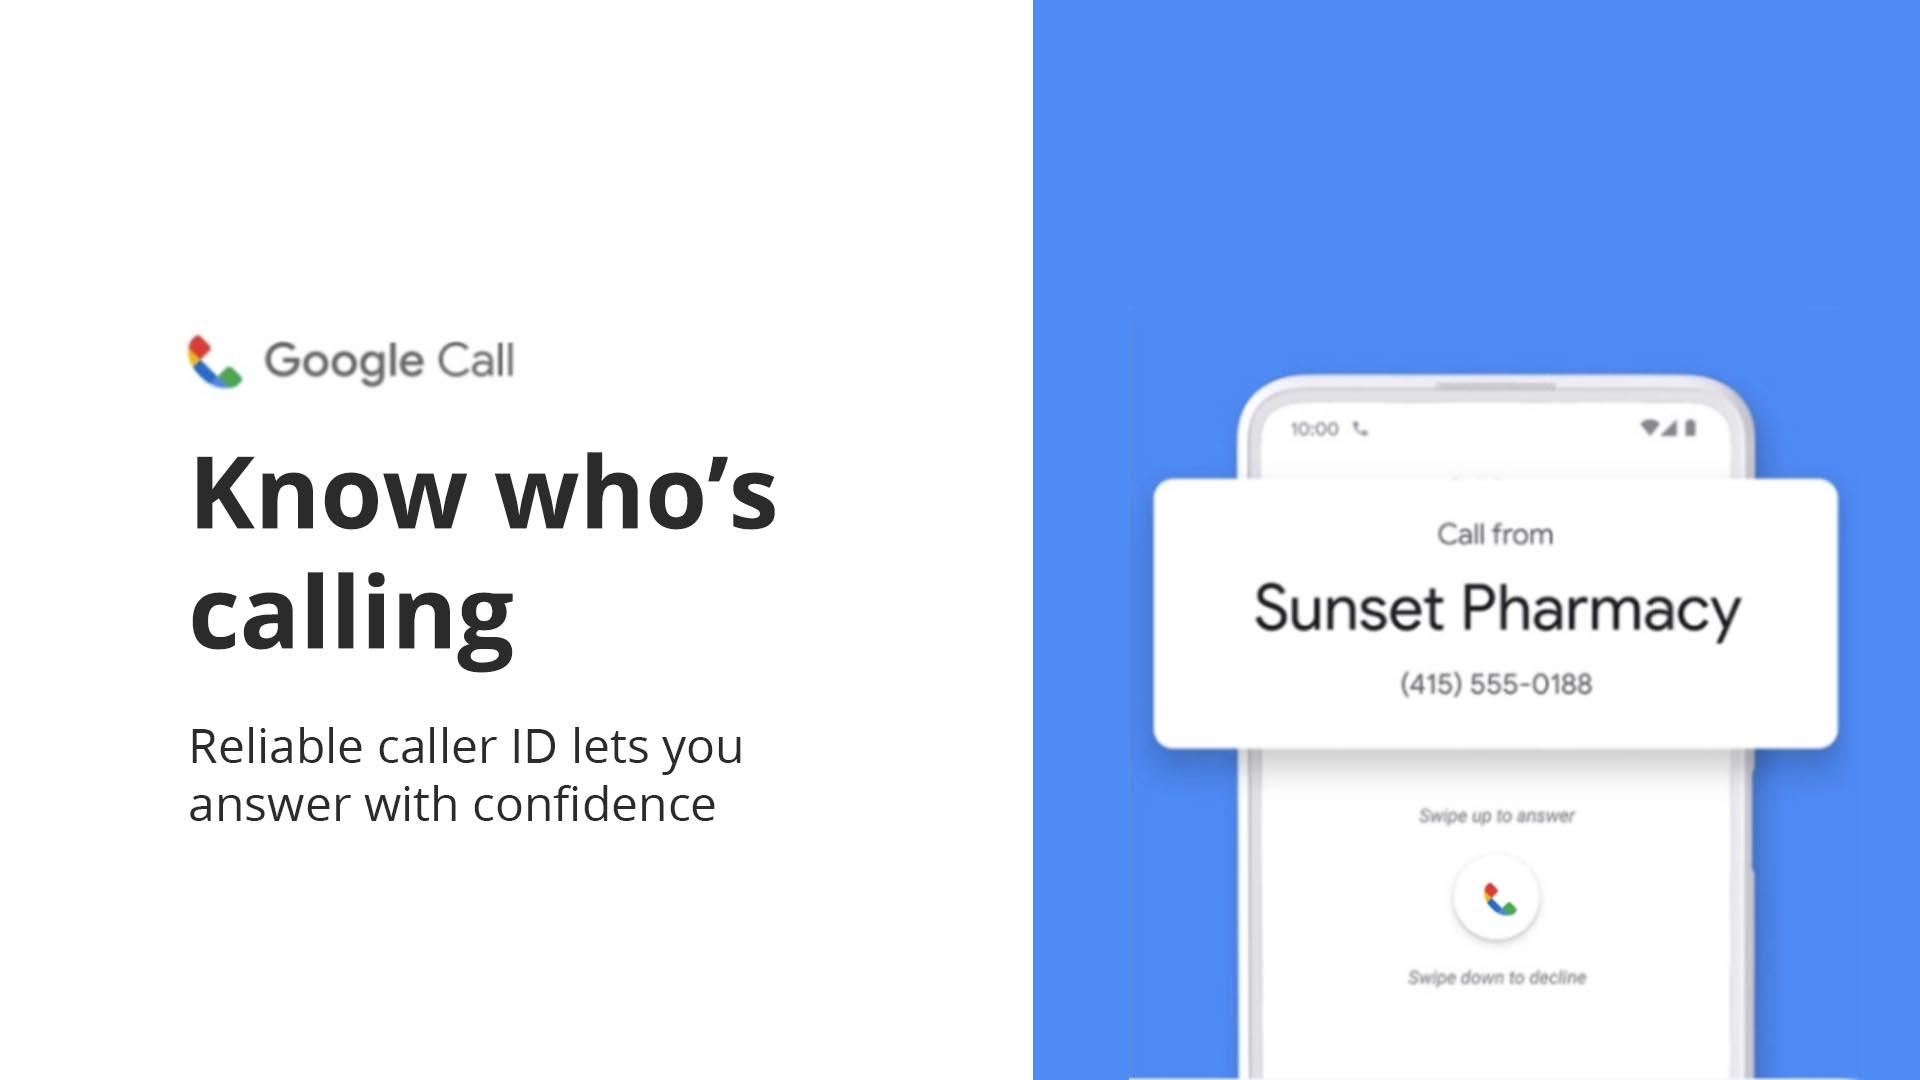 Google's Phone app may be rebranded as 'Google Call', complete with a new icon